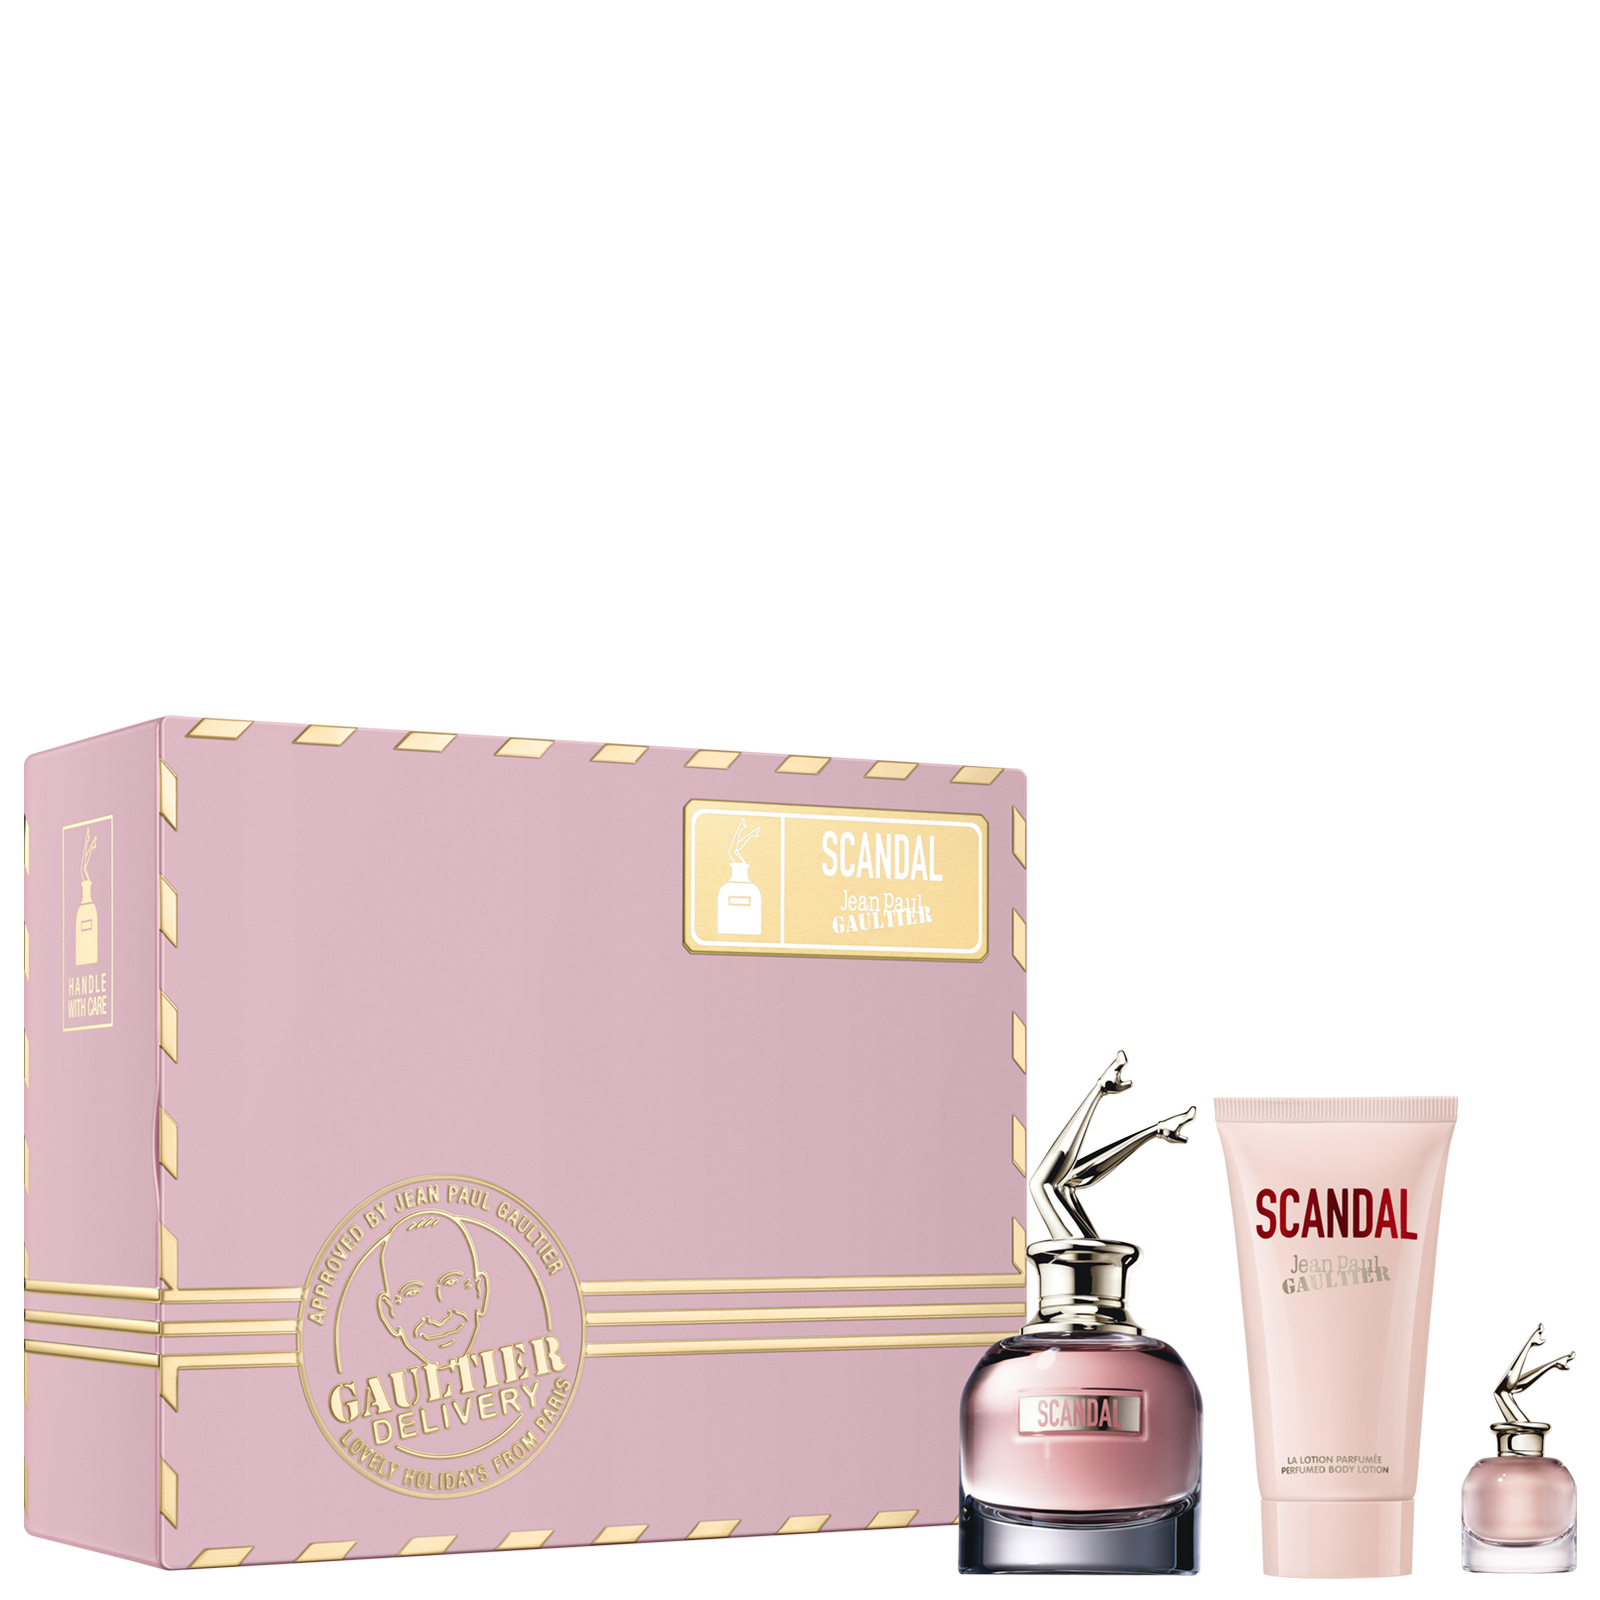 Jean Paul Gaultier Scandal Eau de Parfum Spray 50ml Set regalo